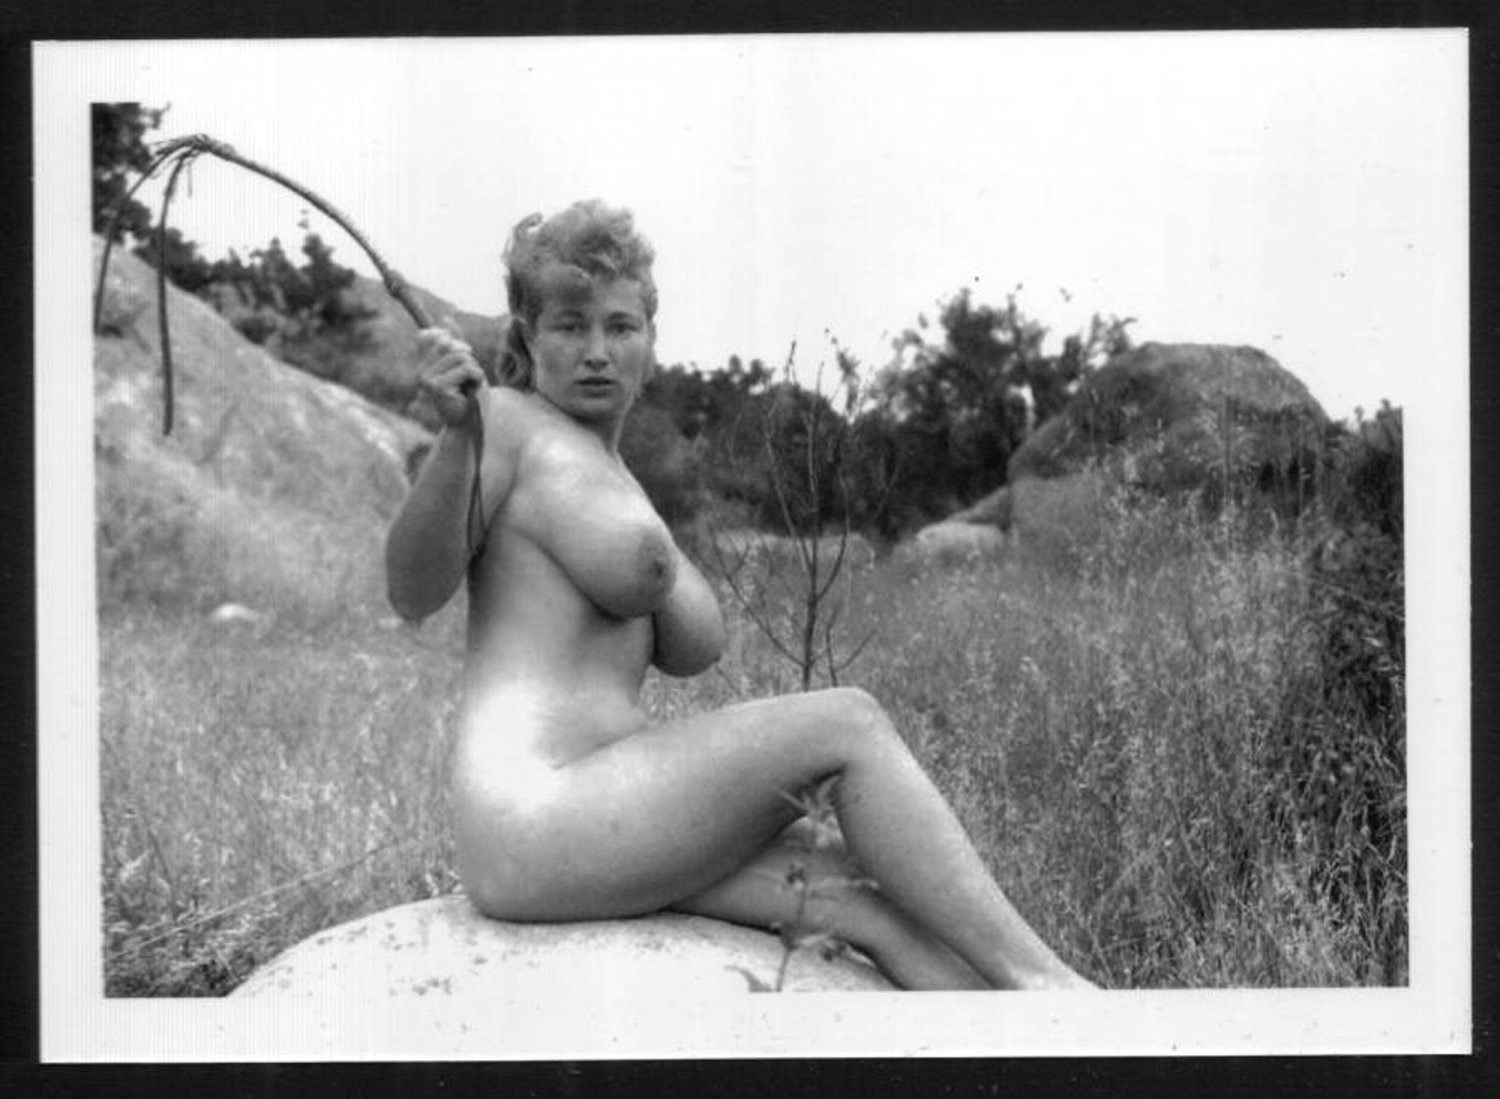 VIRGINIA BELL TOPLESS NUDE HUGE BREASTS NEW REPRINT 5 X 7 #177